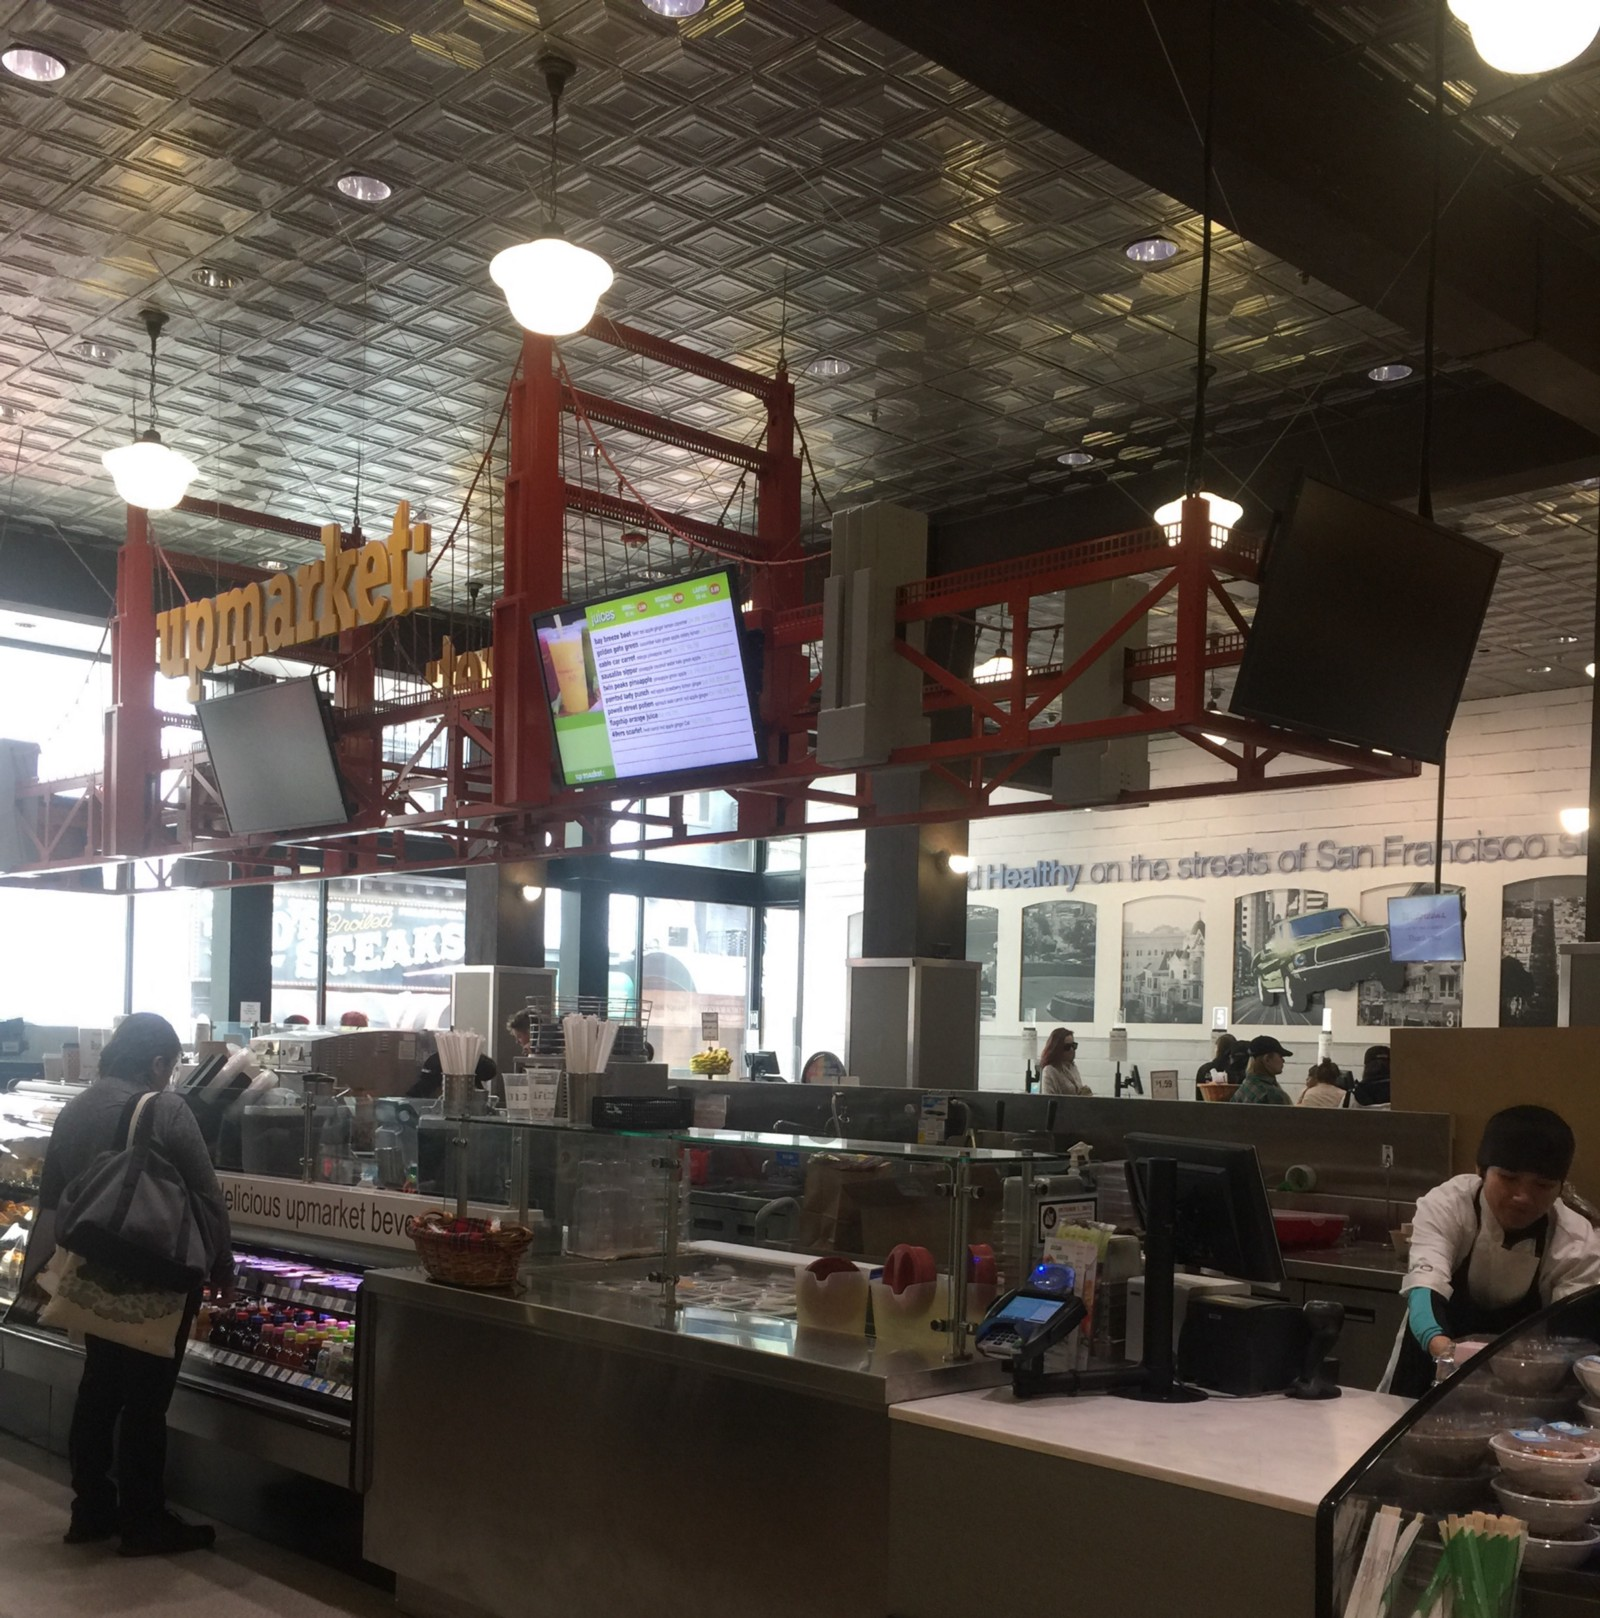 Employees at home for walgreens - In The Center Just As You Enter There Is An Oval Shaped Bar Called The Upmarket With A Barista A Cashier And Two Sushi Chefs